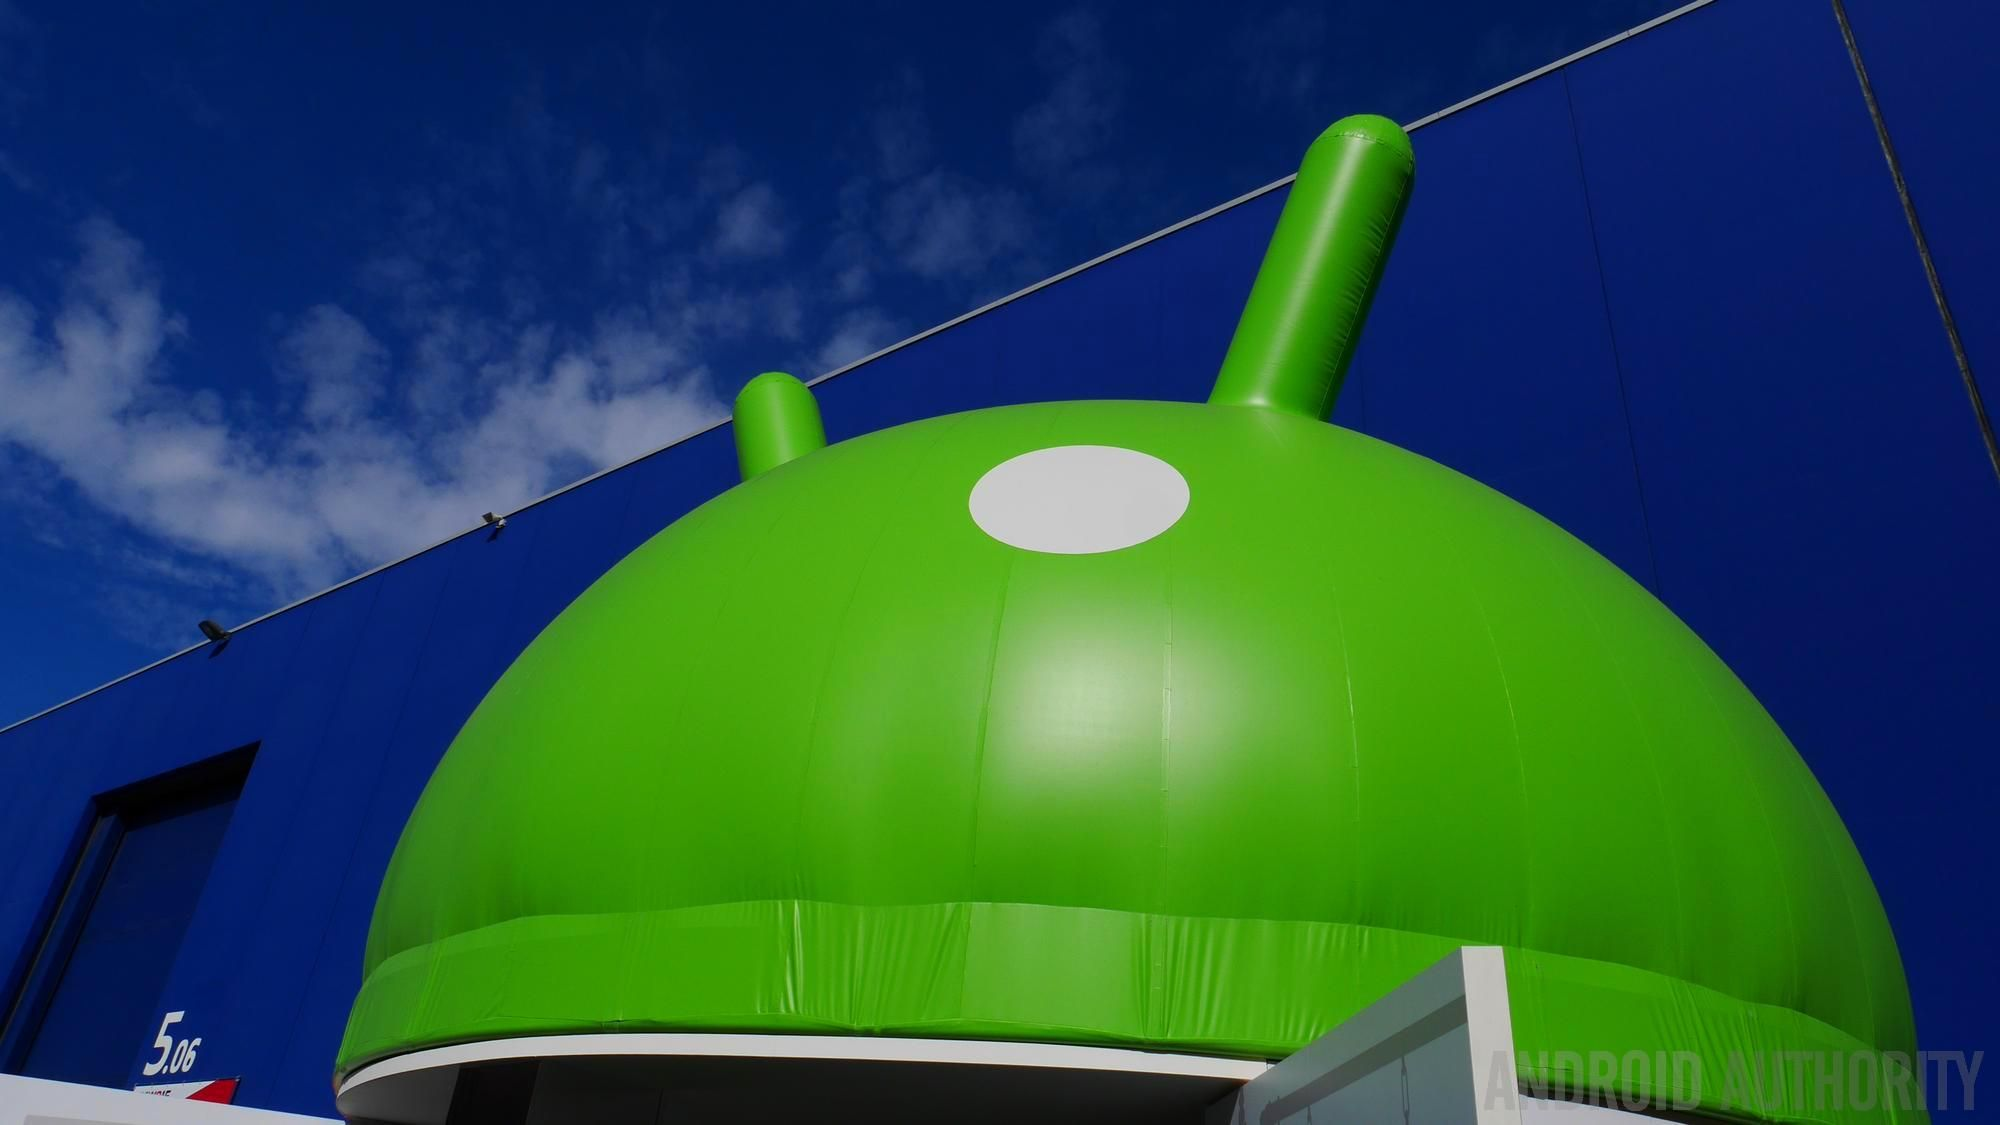 Pin by on Android one, Android, Bring it on